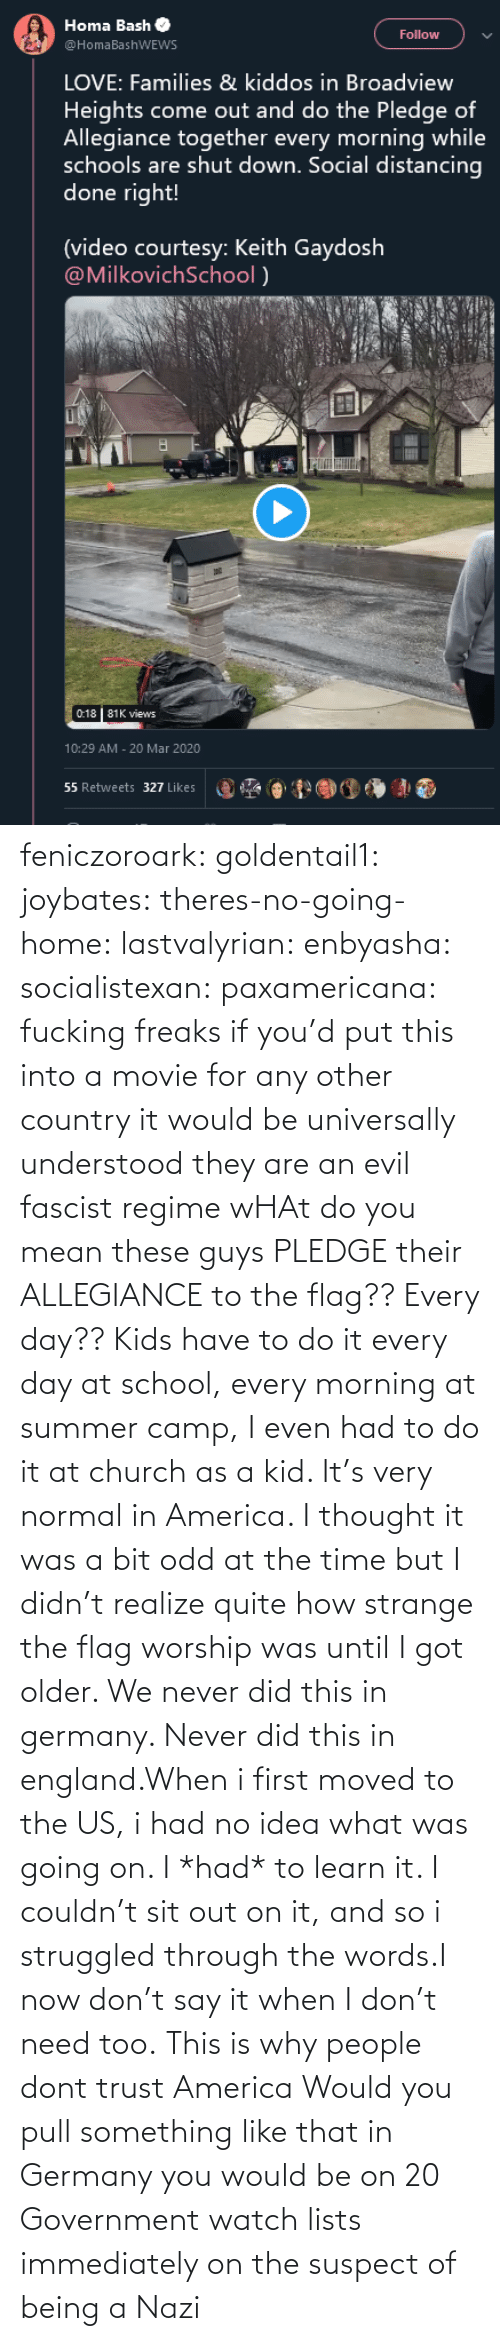 Government: feniczoroark:  goldentail1:  joybates:  theres-no-going-home:  lastvalyrian:  enbyasha:  socialistexan:  paxamericana: fucking freaks       if you'd put this into a movie for any other country it would be universally understood they are an evil fascist regime    wHAt do you mean these guys PLEDGE their ALLEGIANCE to the flag?? Every day??   Kids have to do it every day at school, every morning at summer camp, I even had to do it at church as a kid. It's very normal in America. I thought it was a bit odd at the time but I didn't realize quite how strange the flag worship was until I got older.    We never did this in germany. Never did this in england.When i first moved to the US, i had no idea what was going on. I *had* to learn it. I couldn't sit out on it, and so i struggled through the words.I now don't say it when I don't need too.   This is why people dont trust America    Would you pull something like that in Germany you would be on 20 Government watch lists immediately on the suspect of being a Nazi